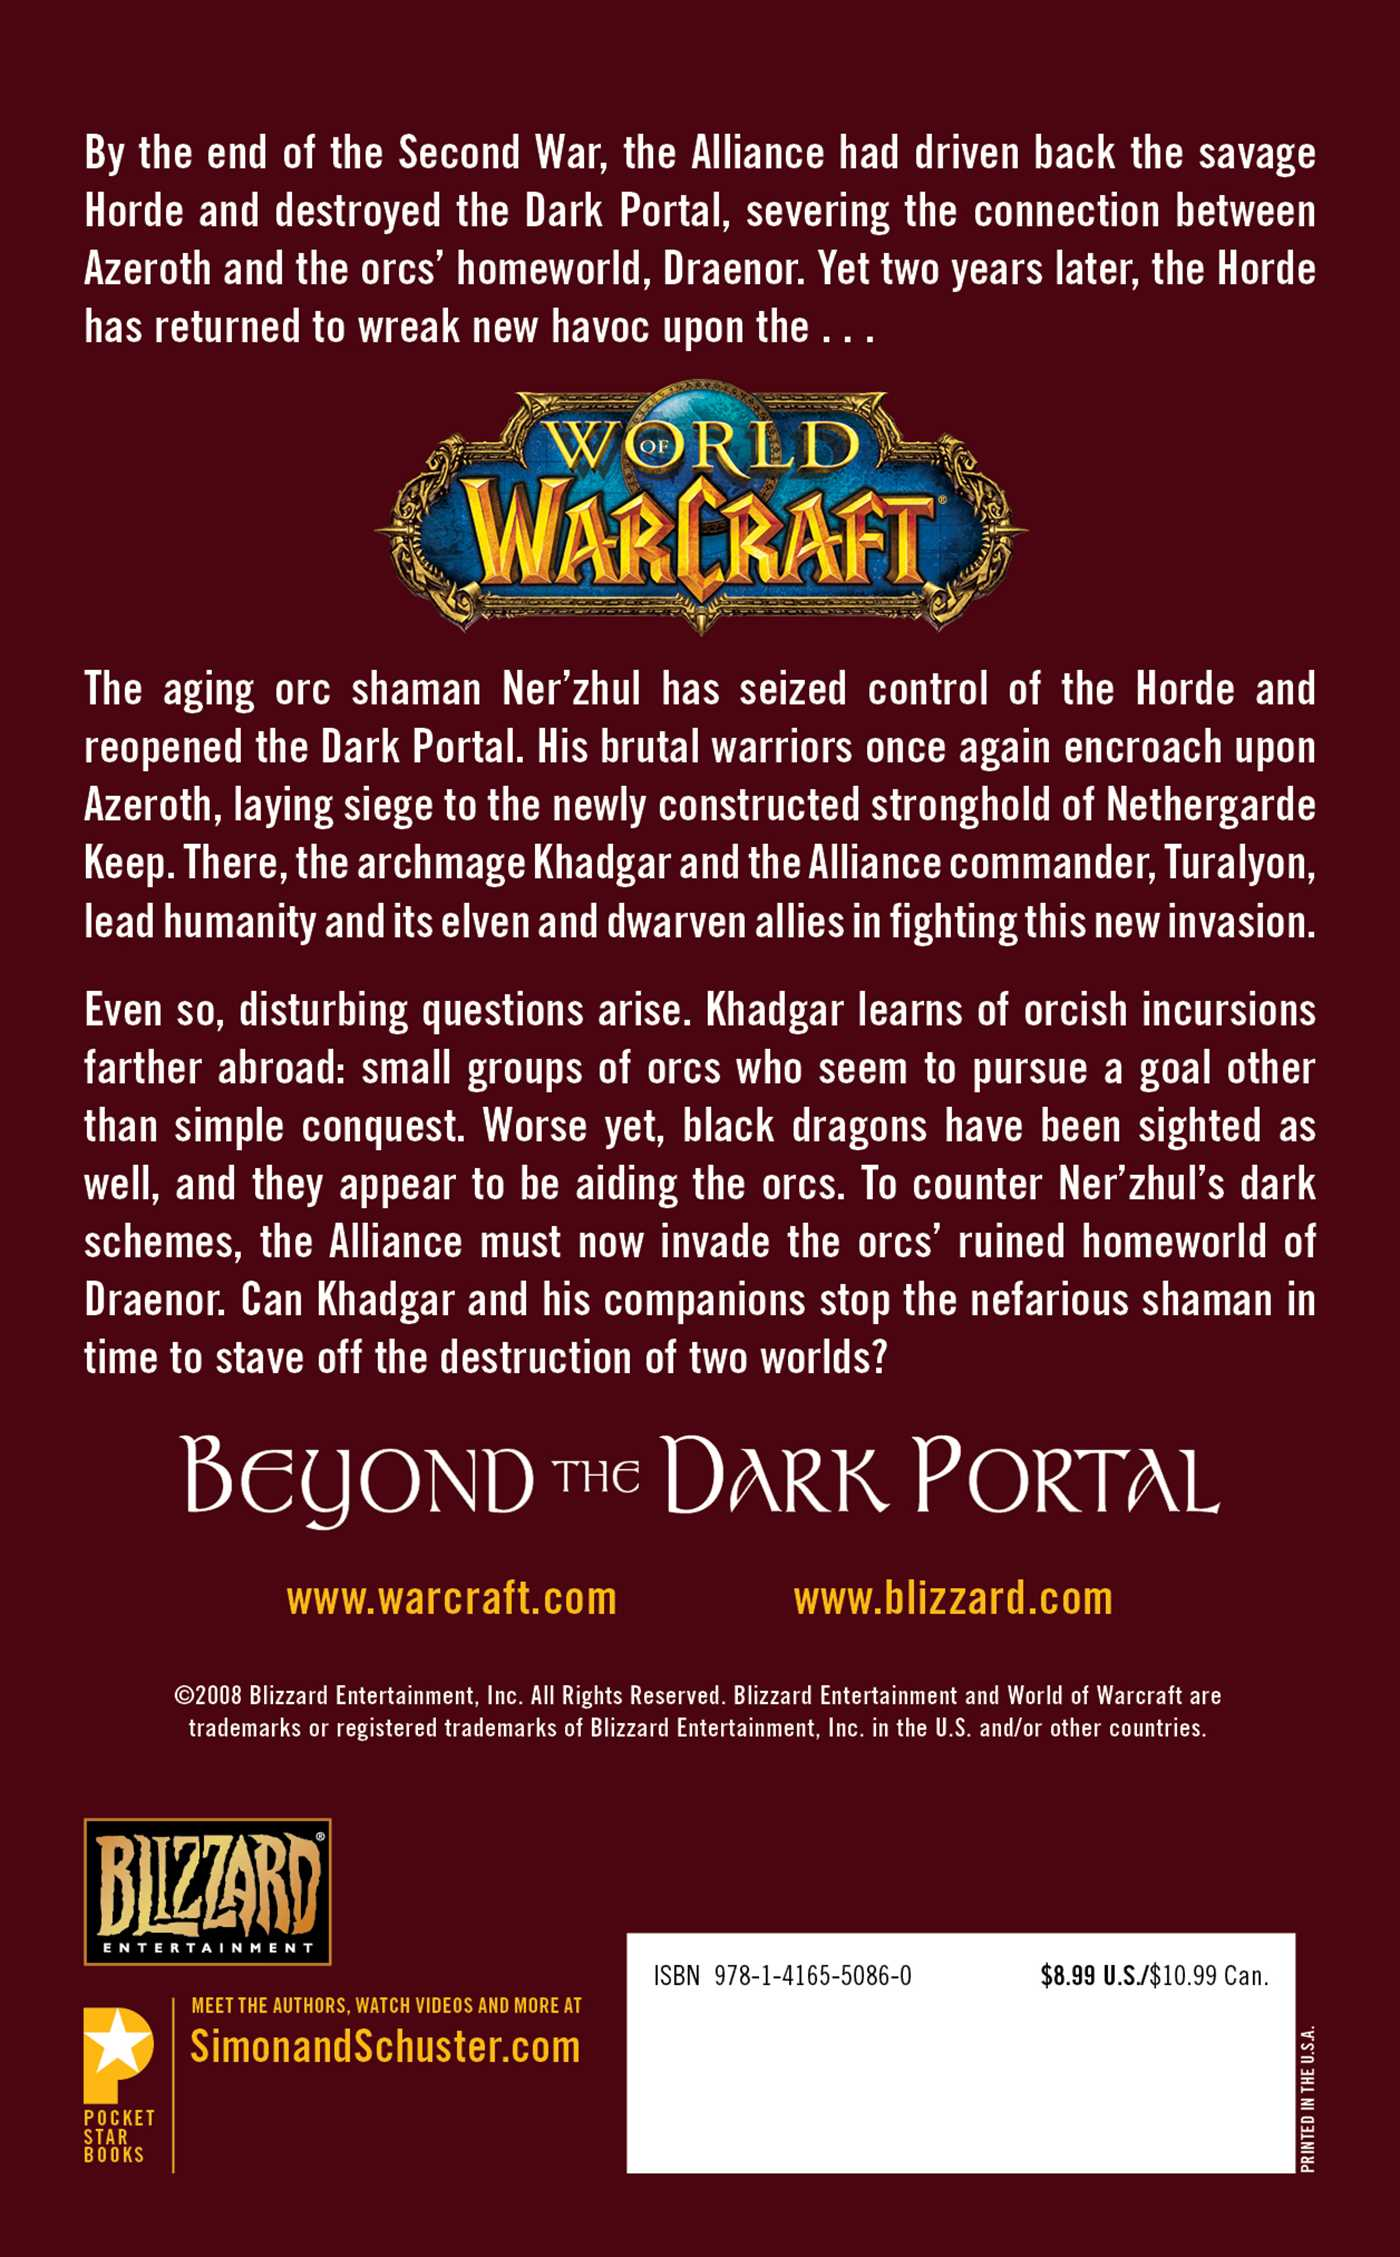 World-of-warcraft-beyond-the-dark-portal-9781416550860_hr-back